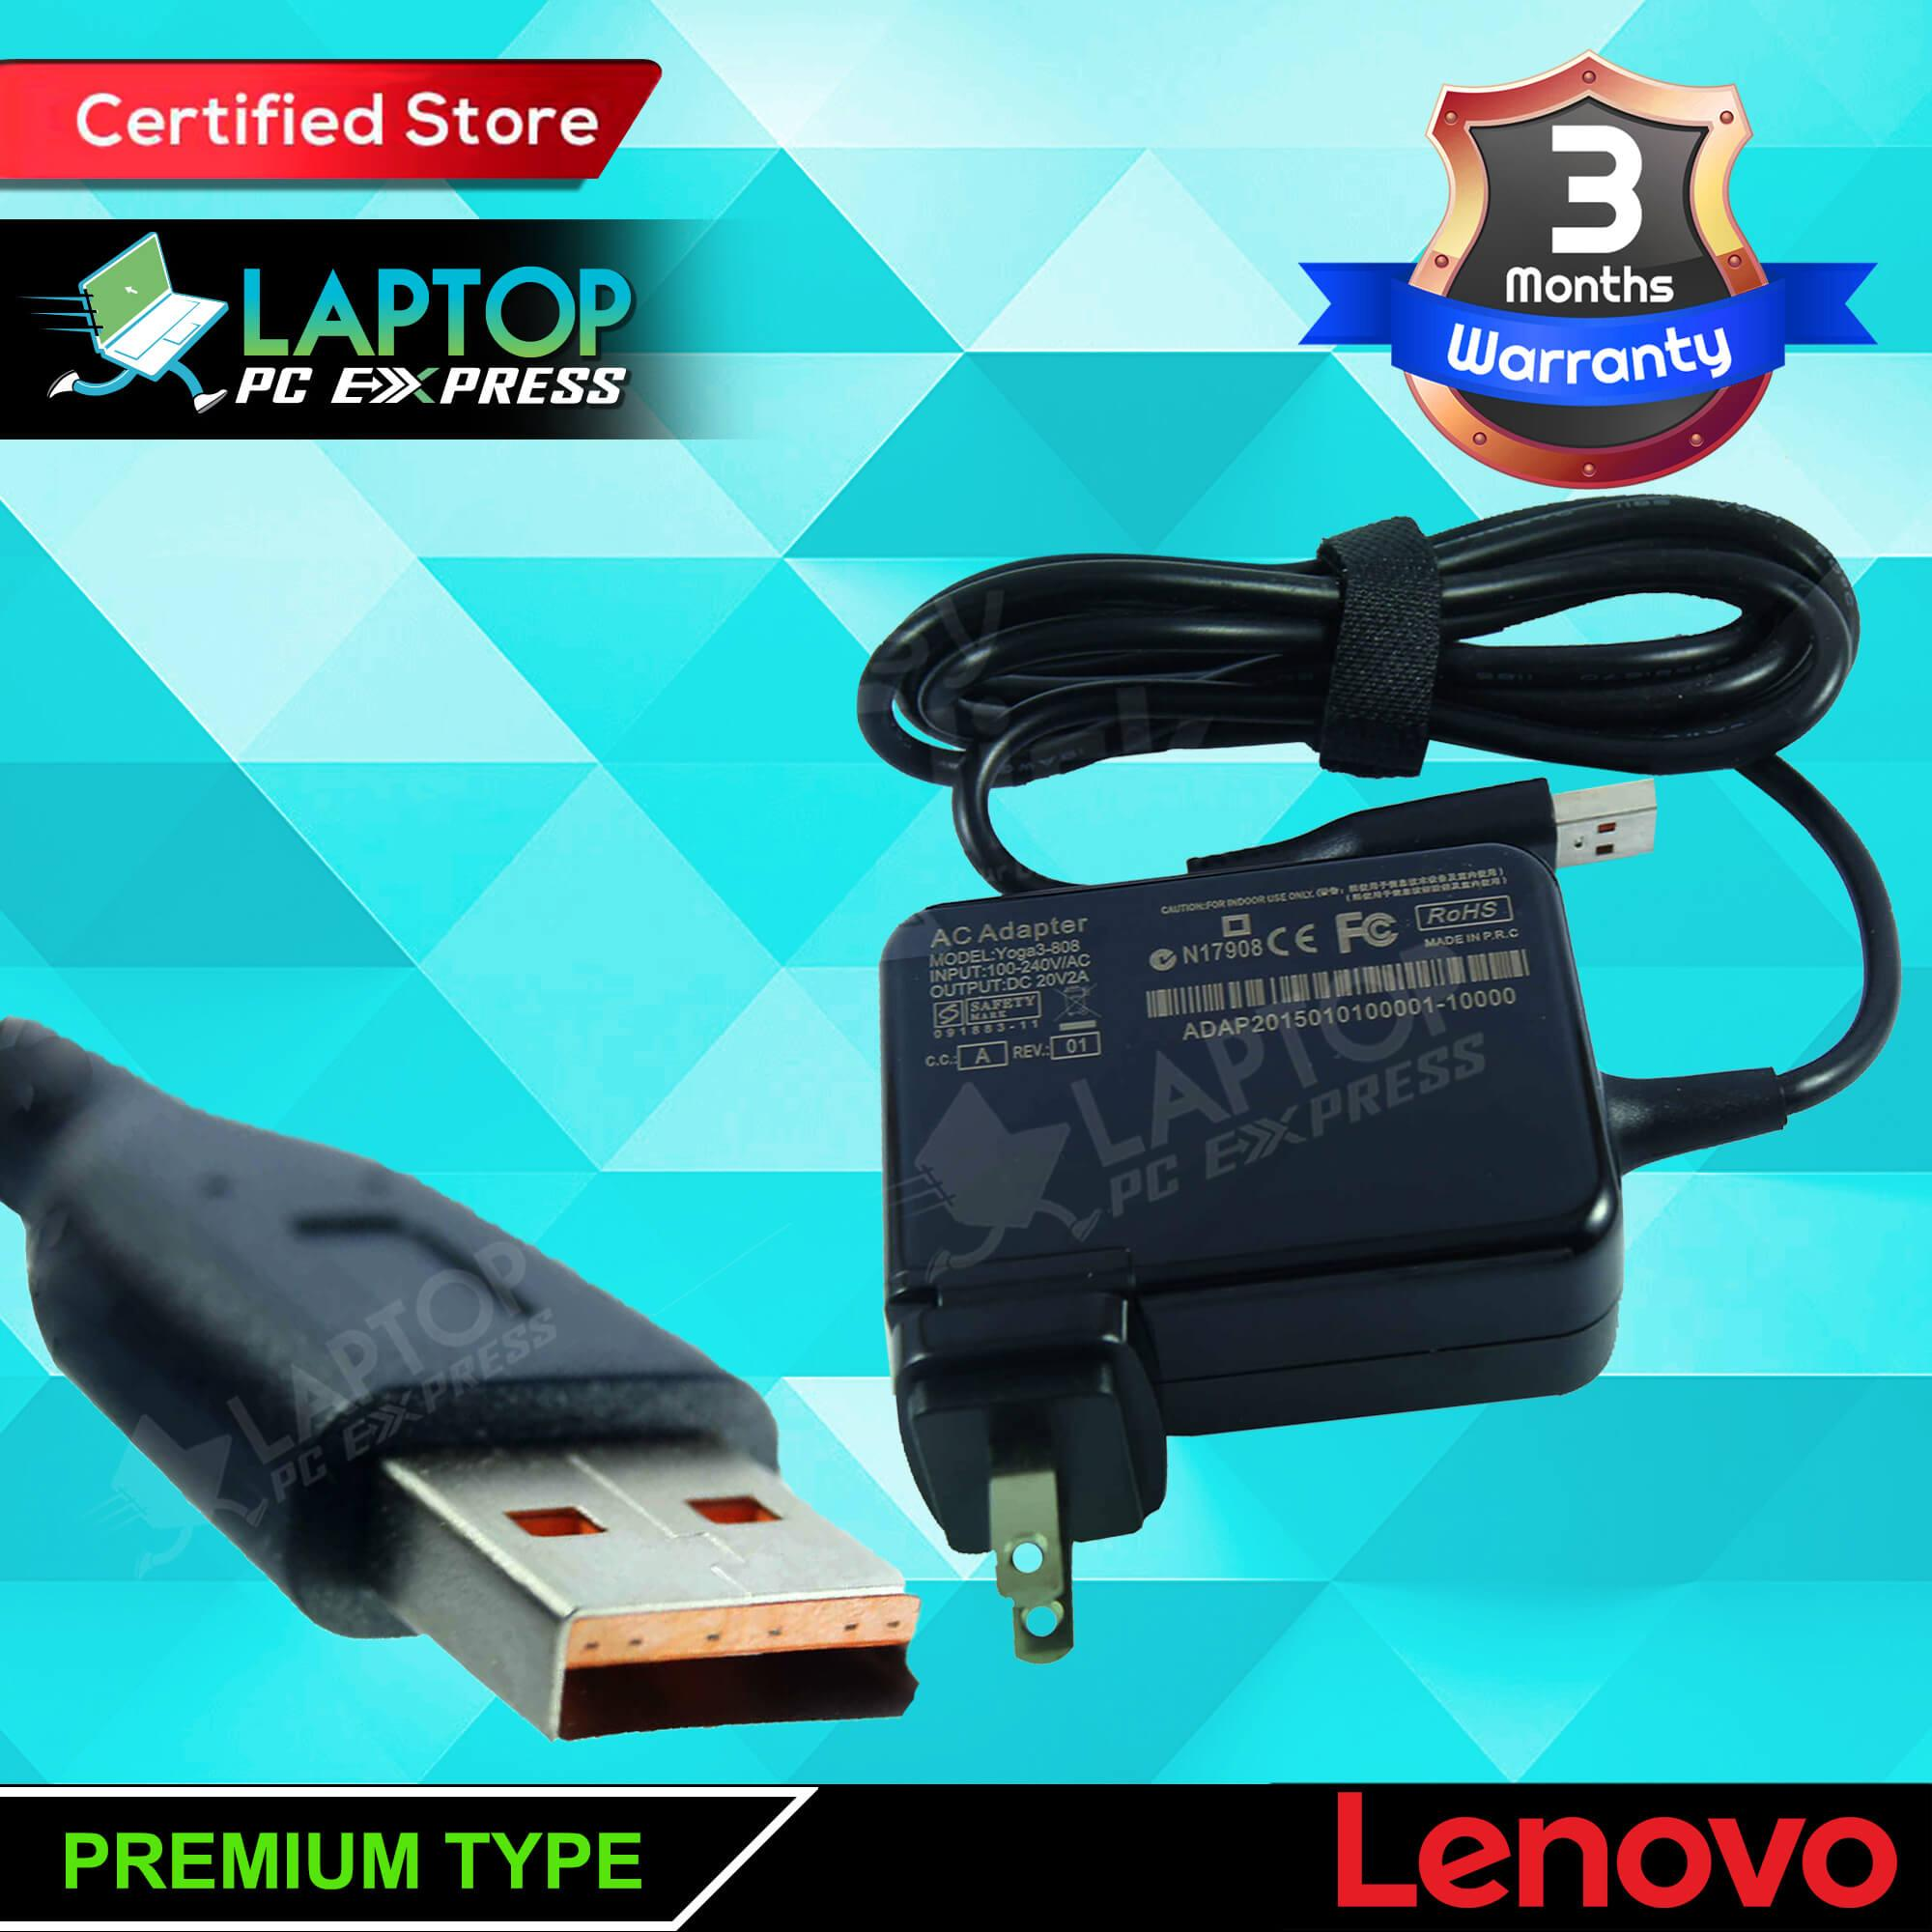 Buy Sell Cheapest Lenovo 14 Best Quality Product Deals Flex 3 6200u 1tb Black 20v 2a 40w Charger Power Adapter For Yoga 1470